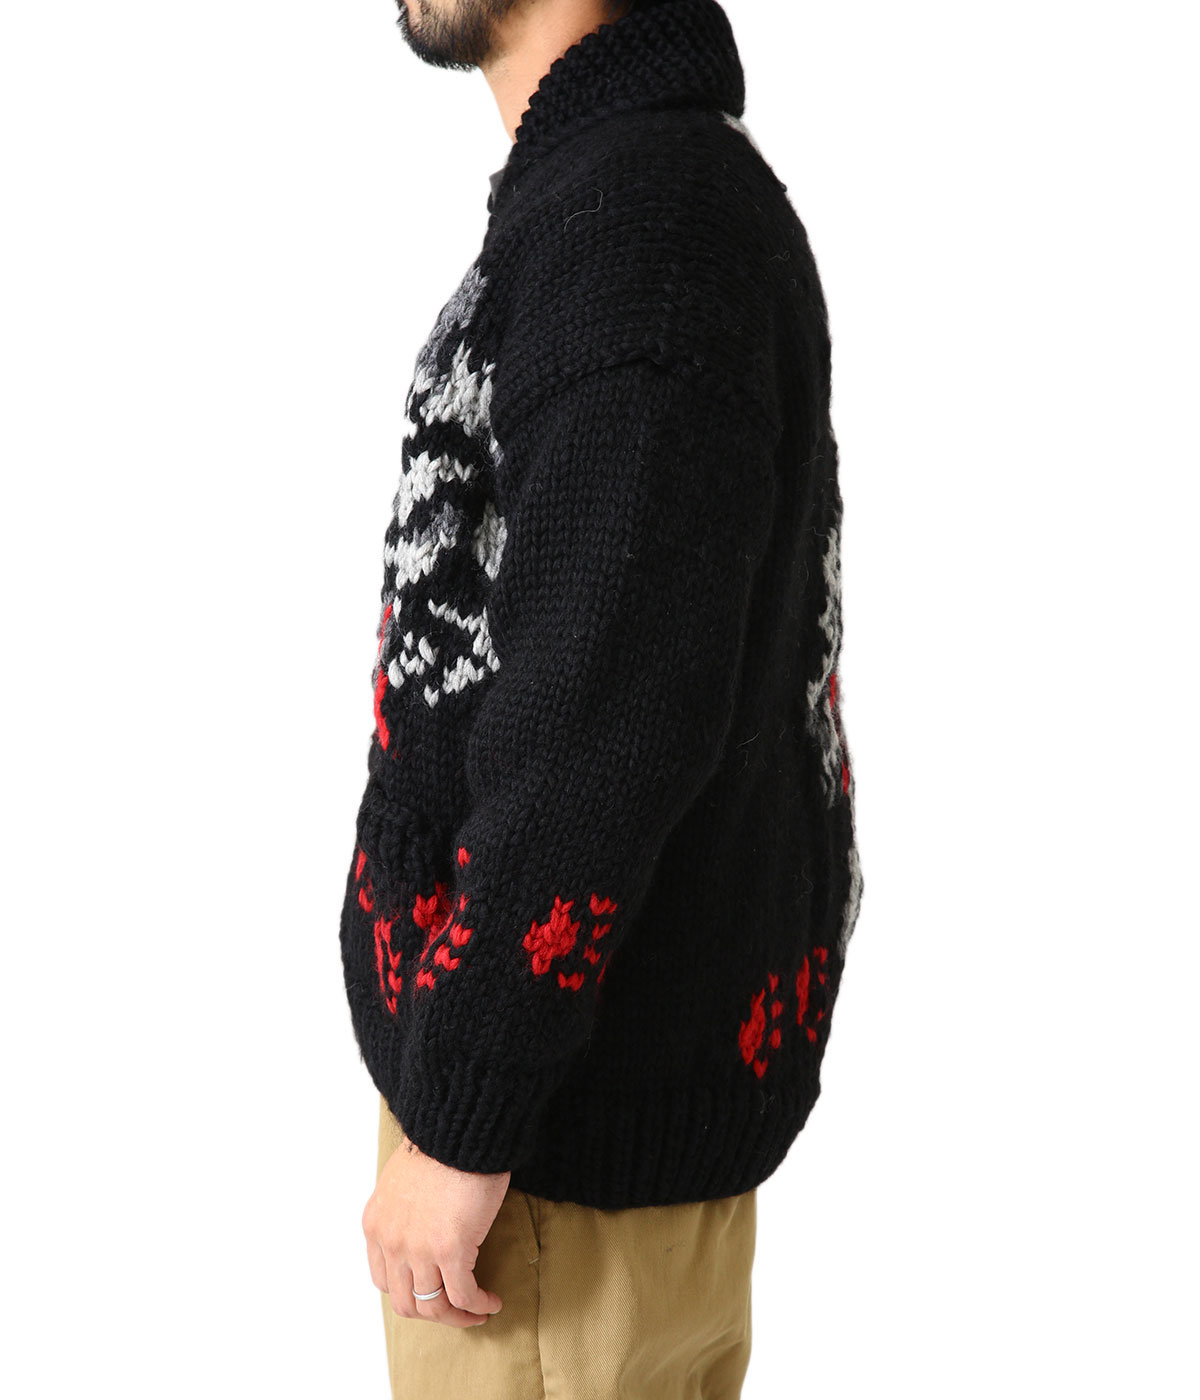 【ONLY ARK】別注 ウルフ Black/Light Grey/Red